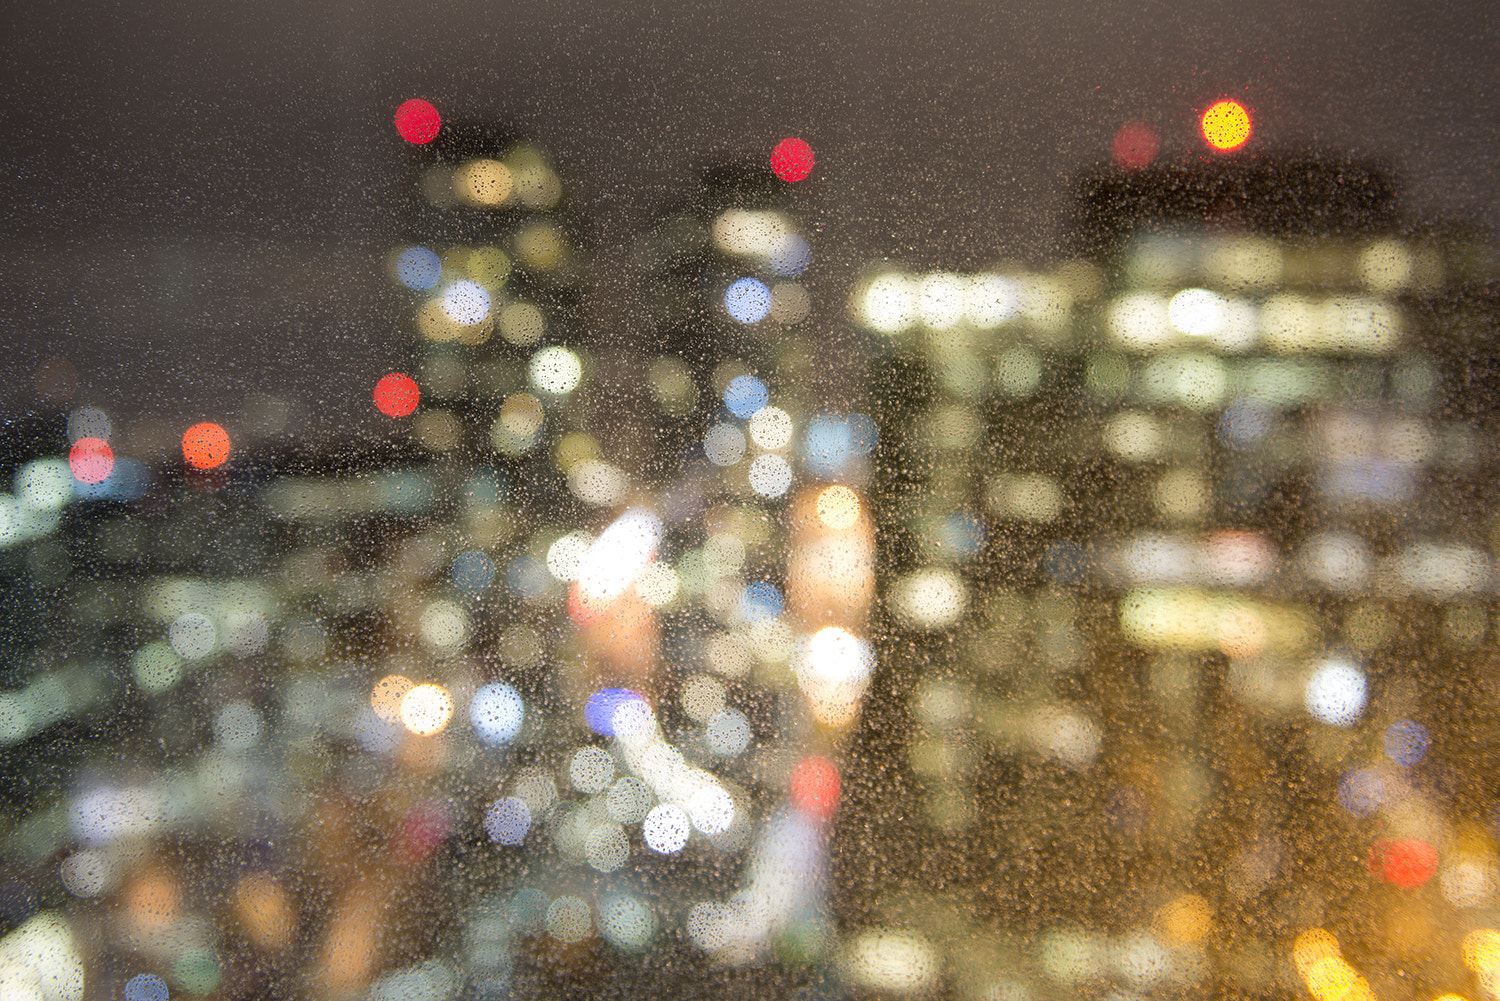 Photograph Rainy City by Tobias Smith on 500px